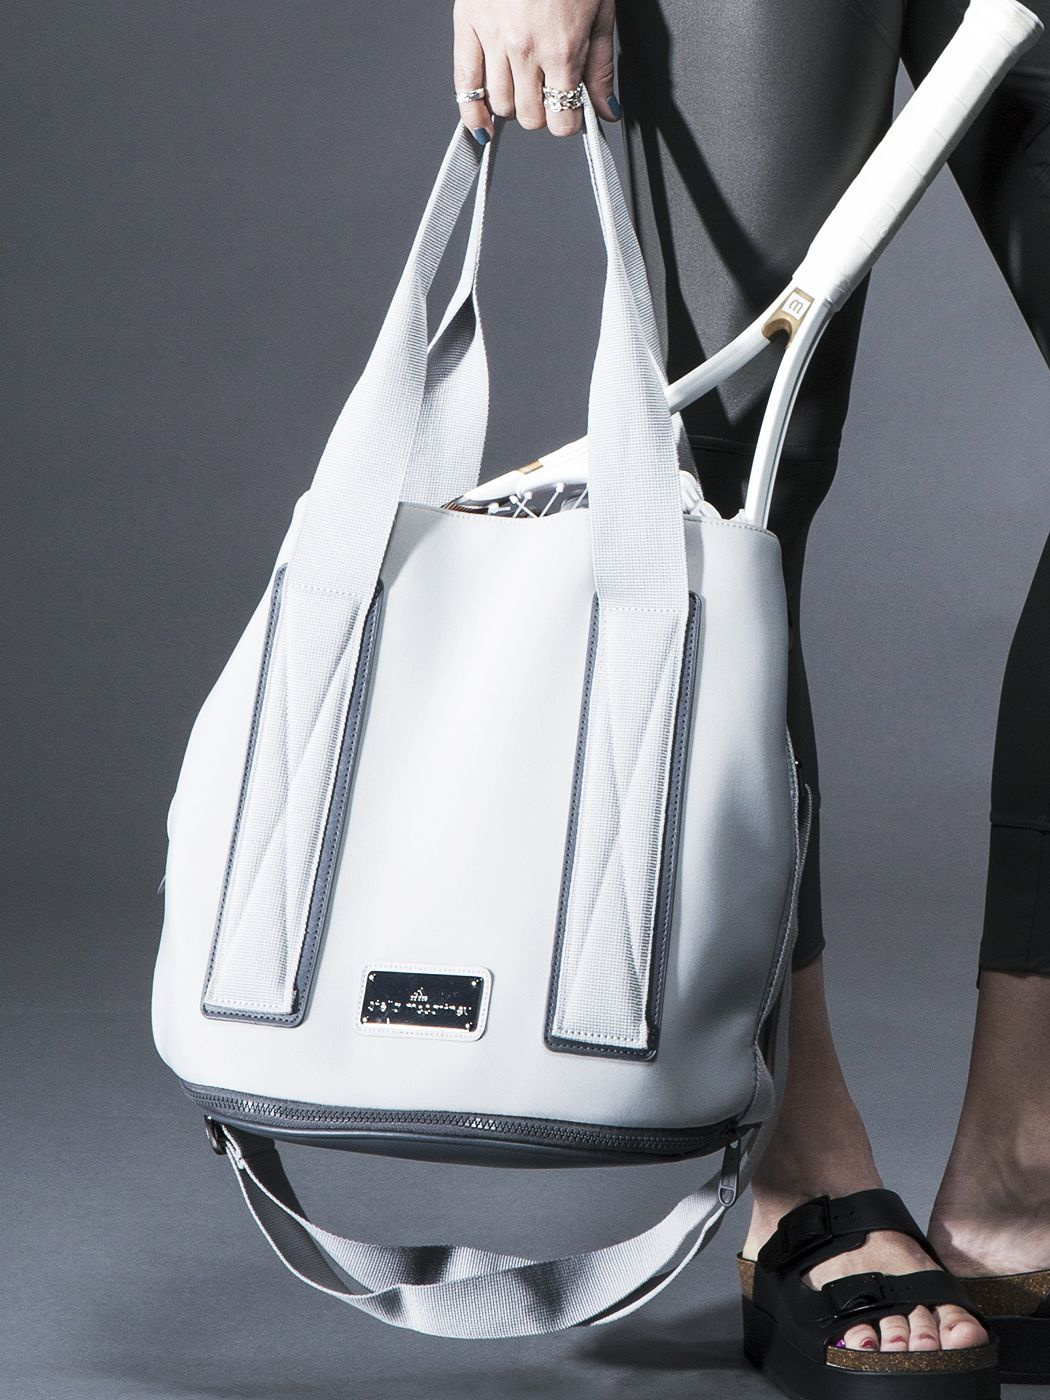 a243c70d54b3e Tennis Bag - Adidas–Stella McCartney - Designers